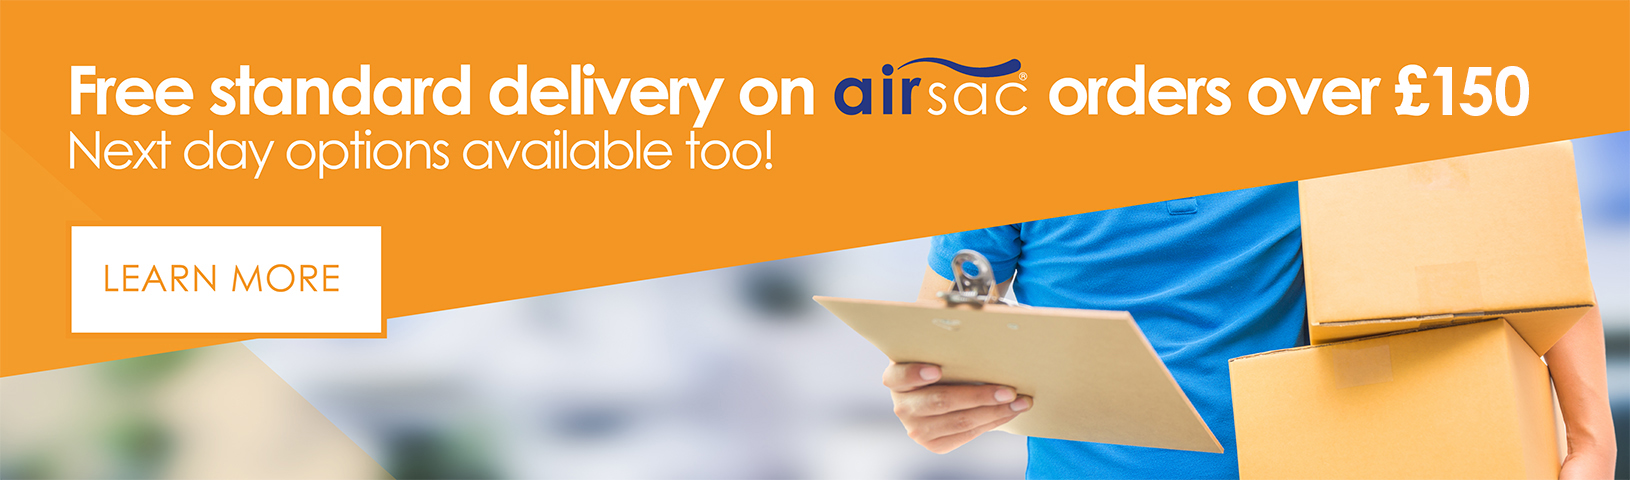 Airsac delivery options